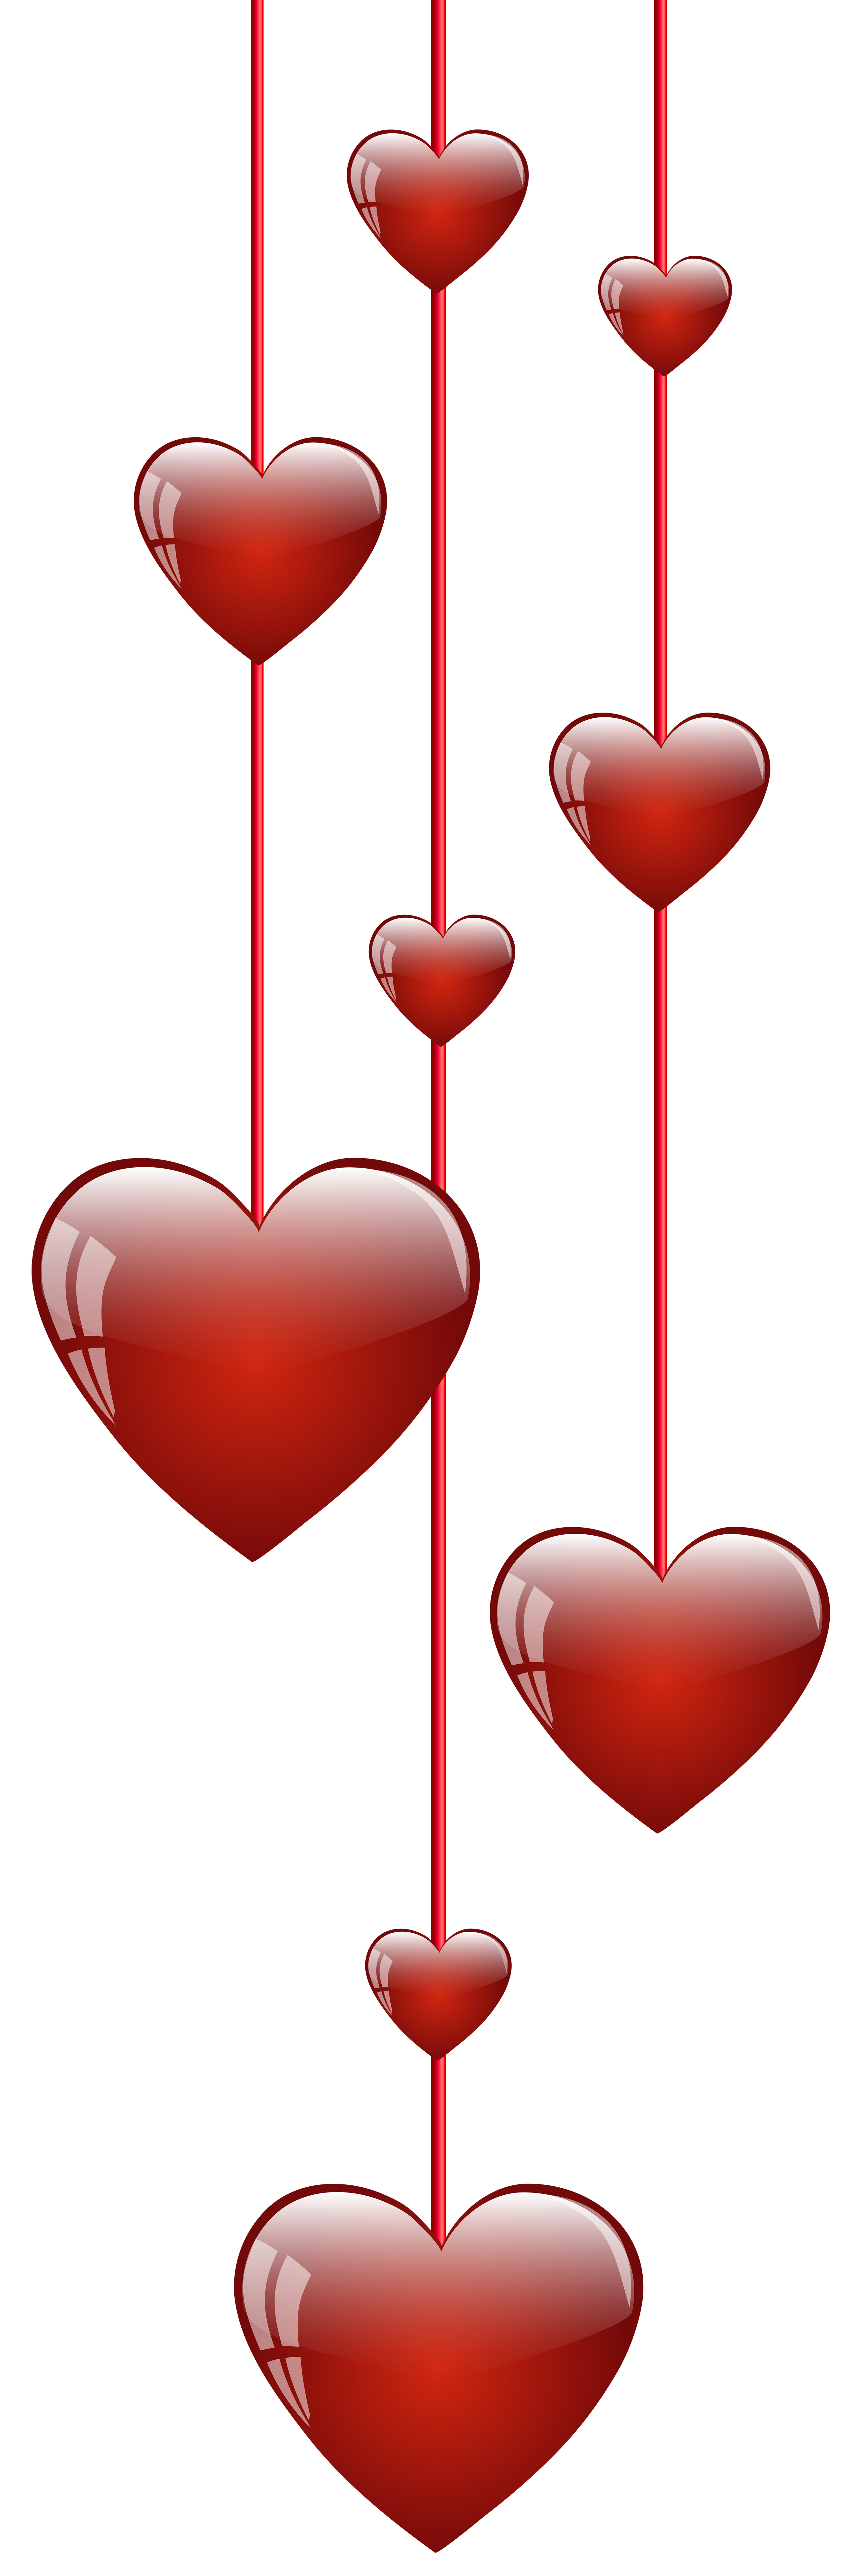 2669x8000 Hanging Hearts Png Clip Art Imageu200b Gallery Yopriceville